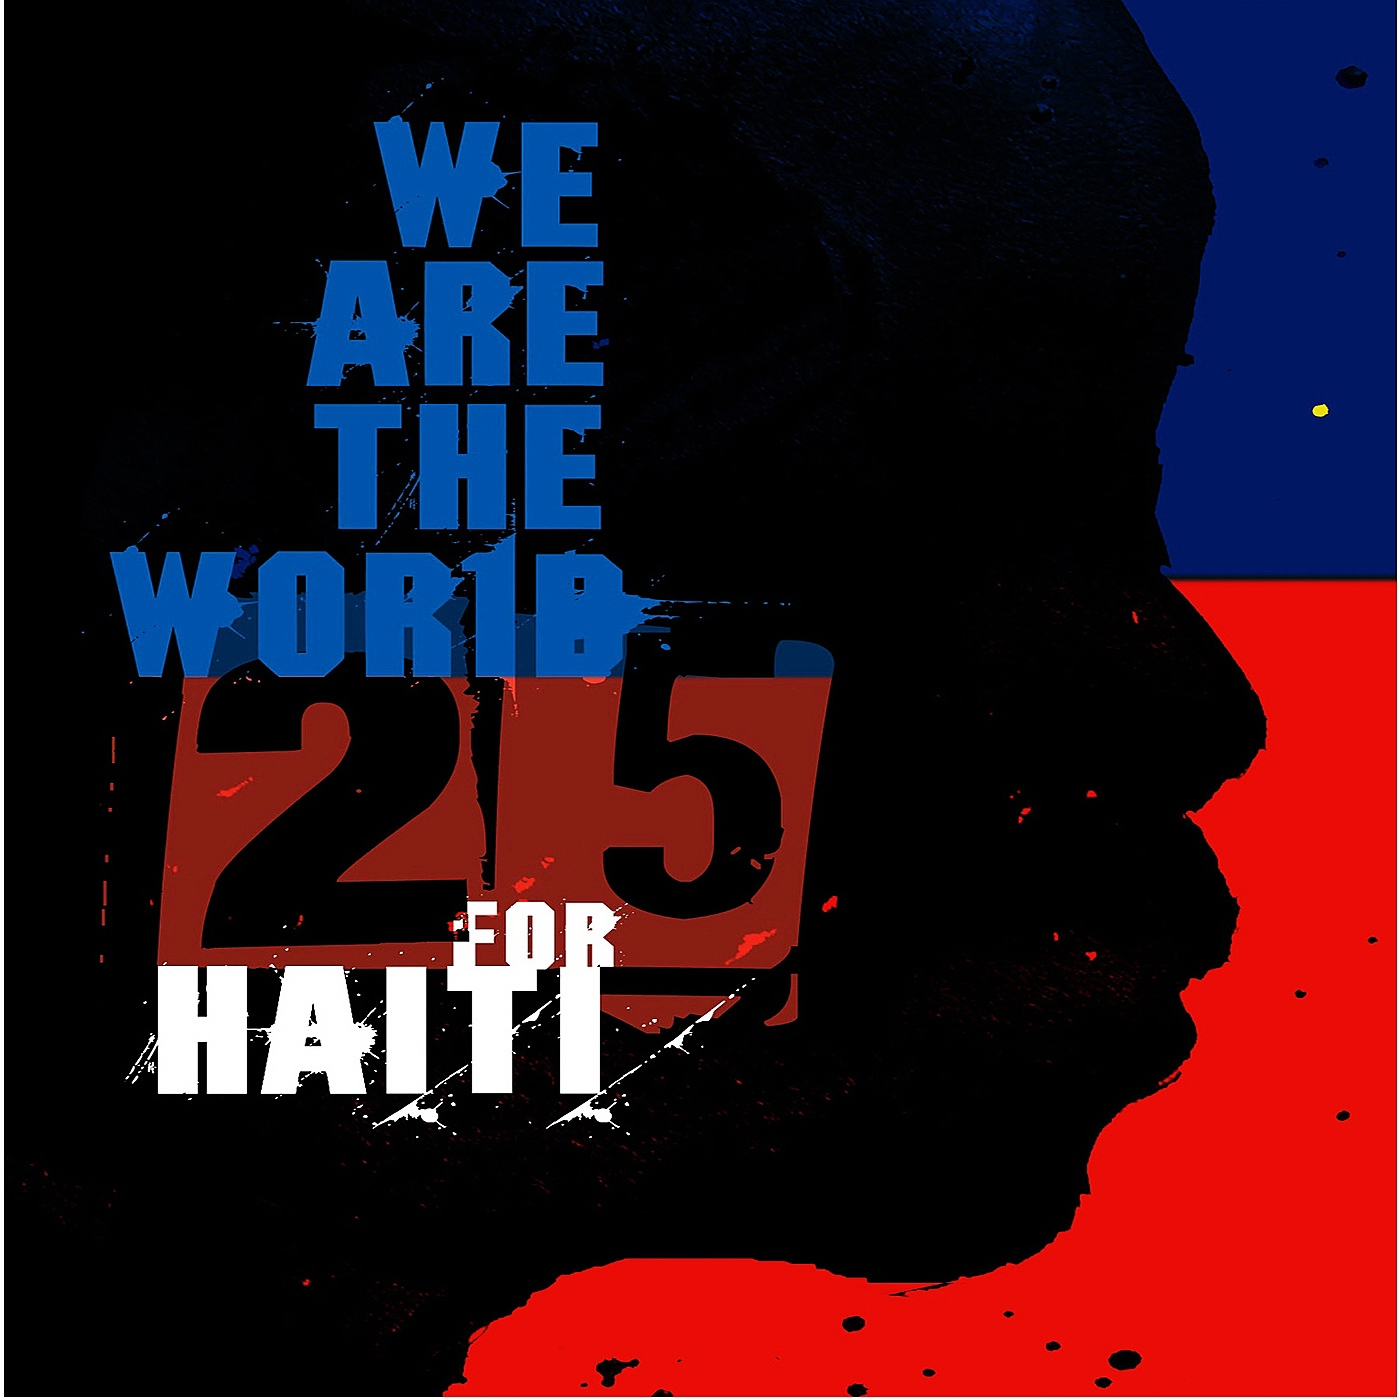 [80's] U.S.A. for Africa - We Are the World (1985) Artists%20for%20Haiti%20-%20We%20Are%20The%20World%2025%20For%20Haiti